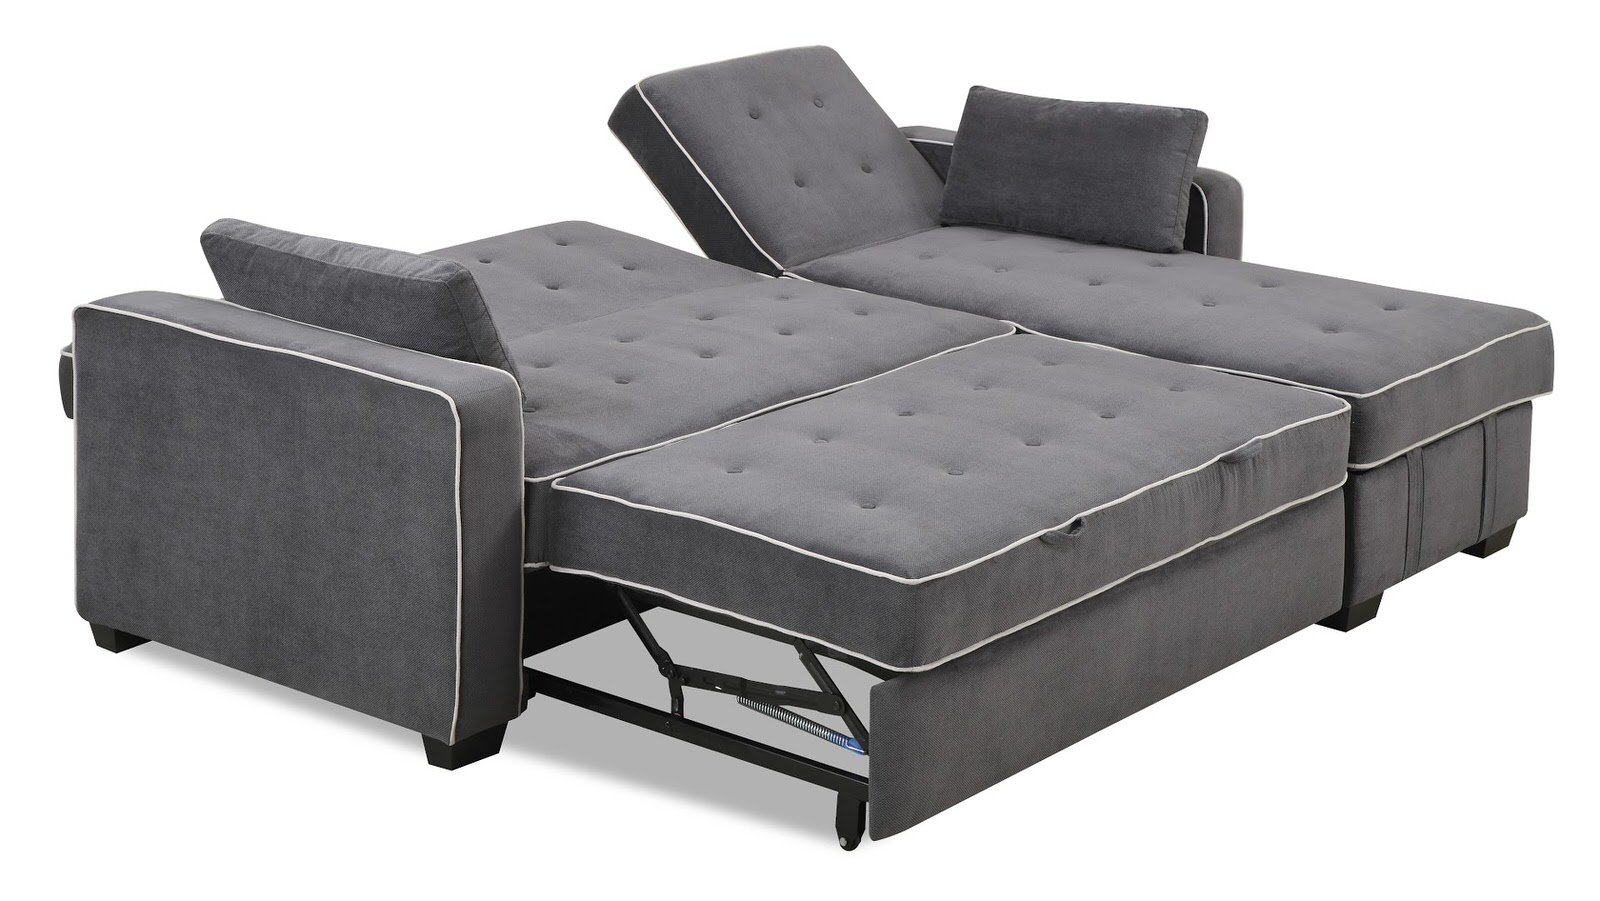 Augustine Sectional Moon Grey Serta Lifestyle Regarding Convertible Sofa Bed (#1 of 15)